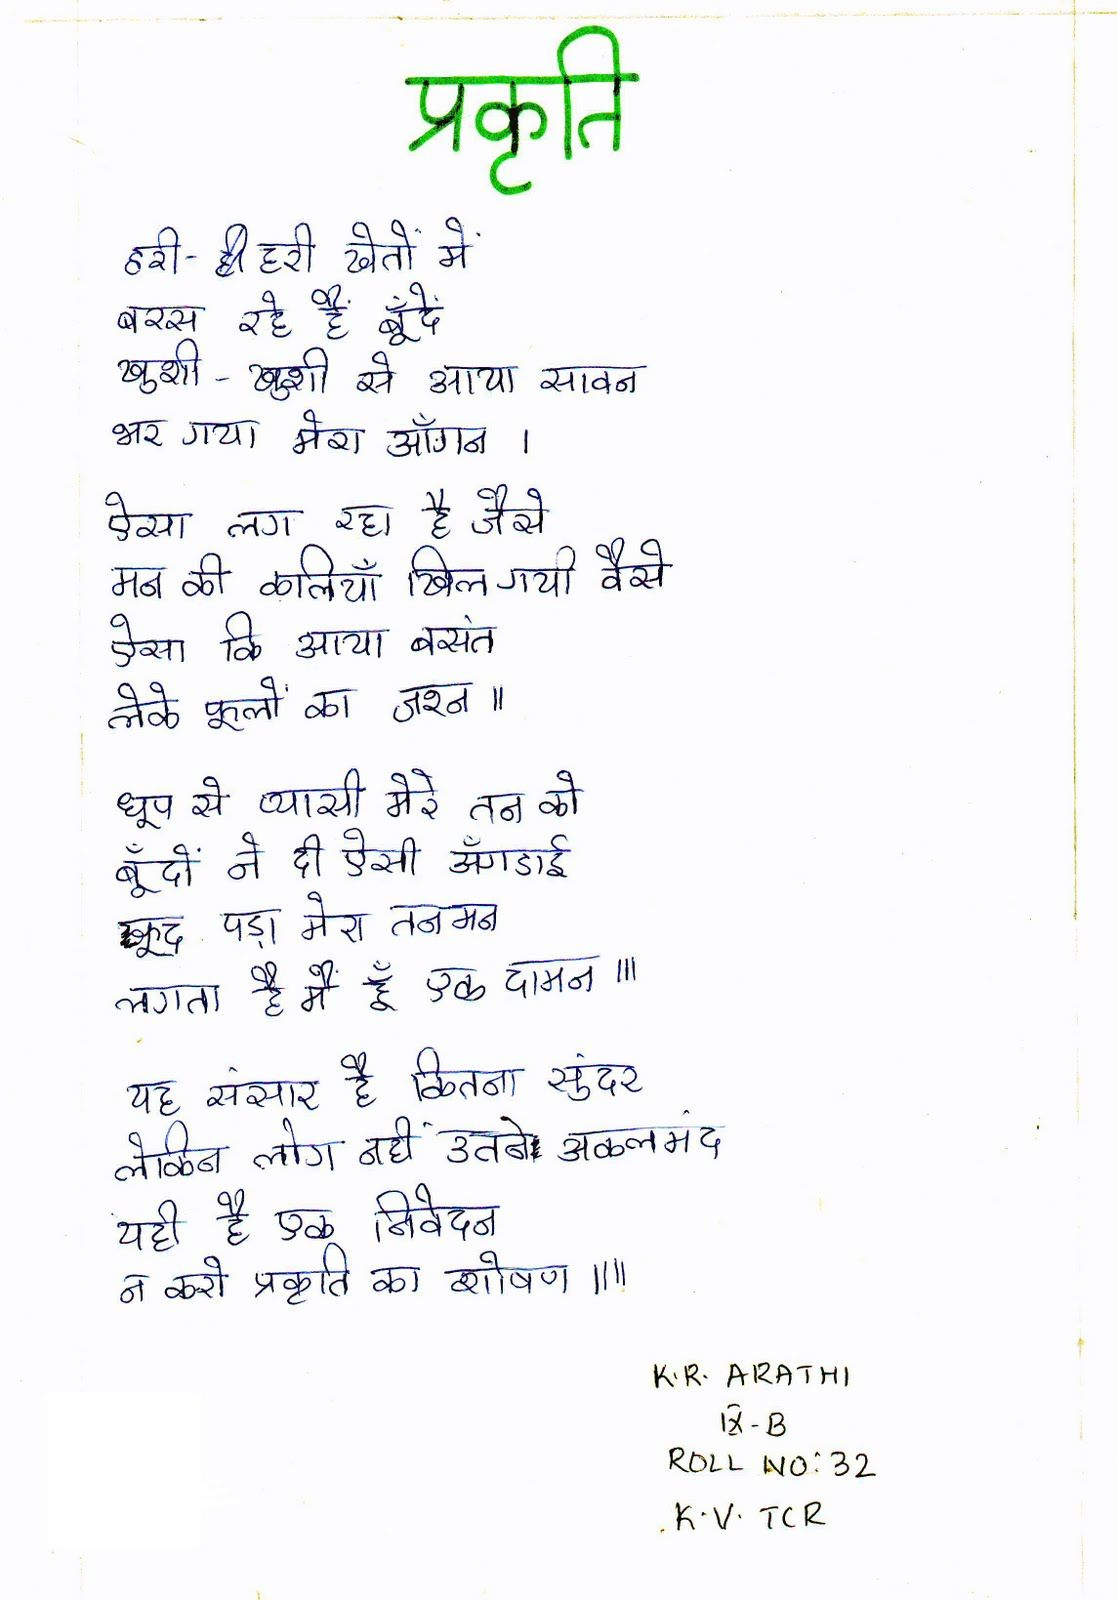 K V Thrissur School Magazine Hindi Section Poem Kids